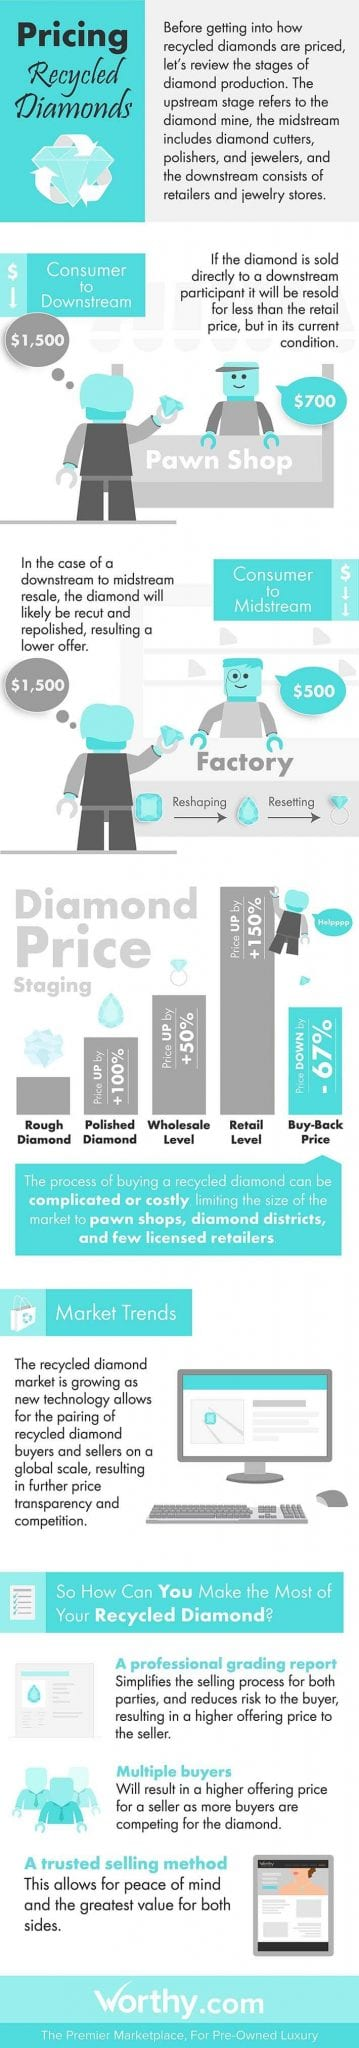 pricing recycled diamonds infographic